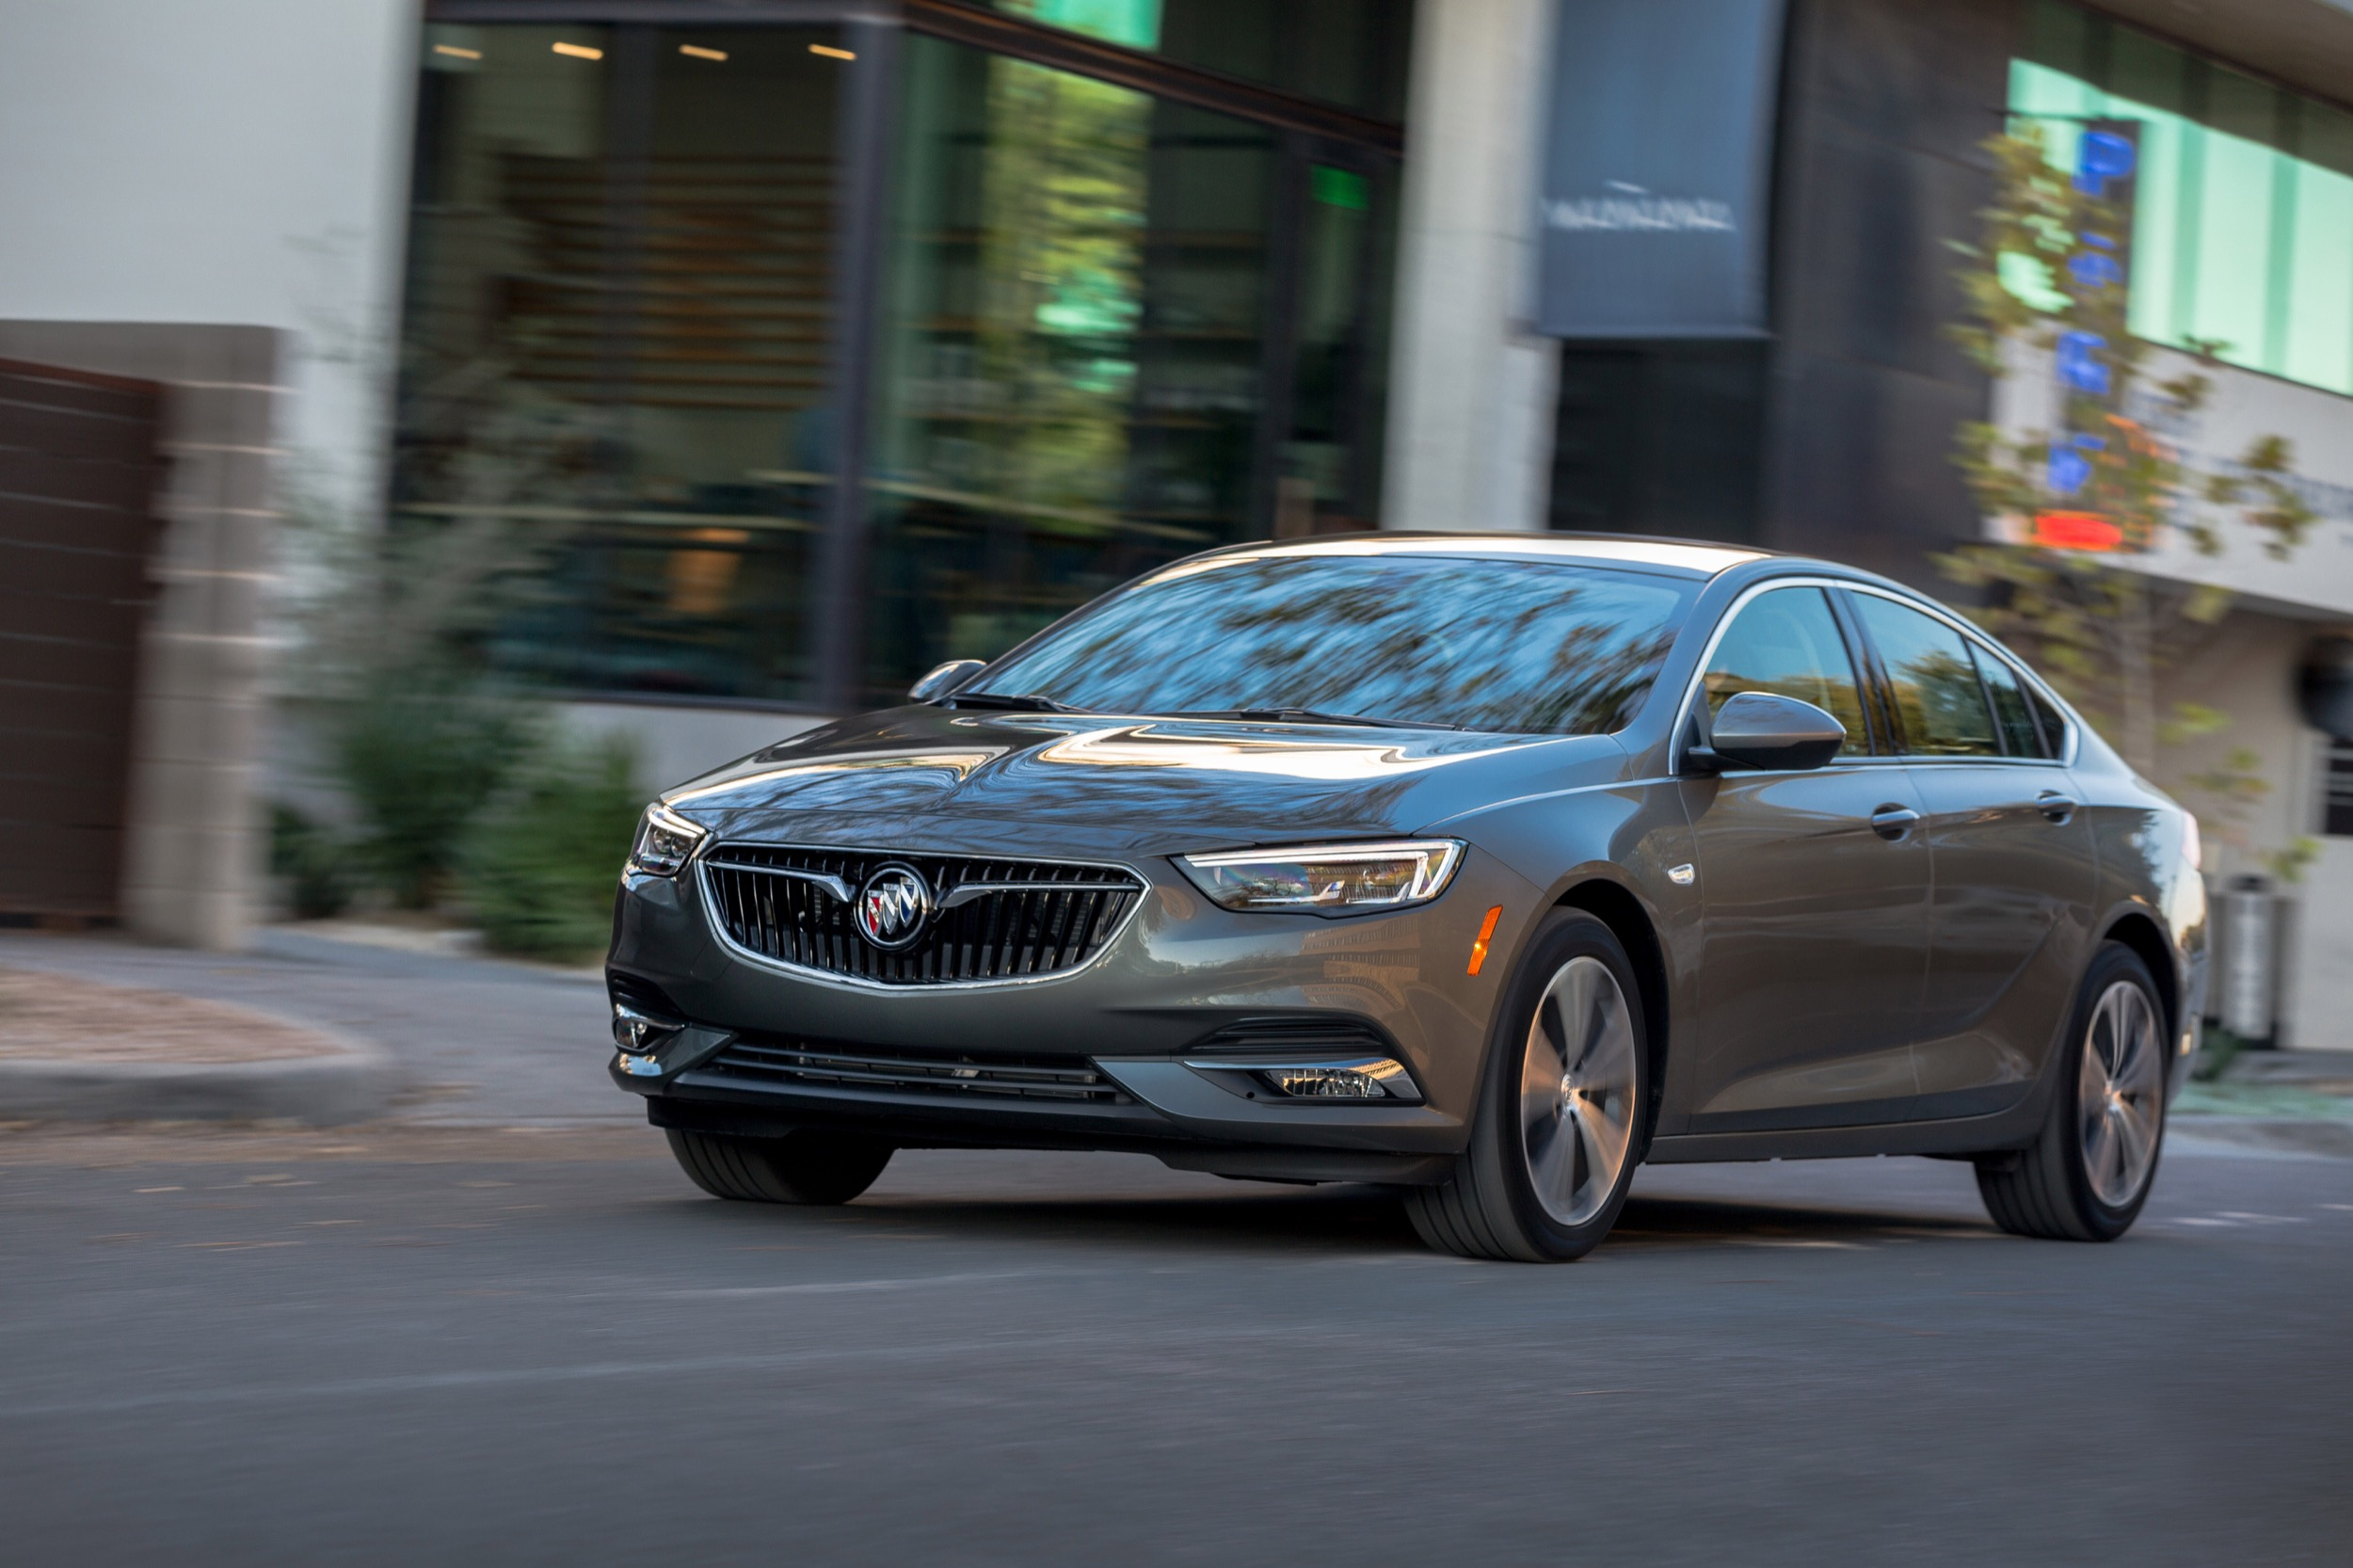 Gm Discontinues One Trim Level Of Buick Regal Sportback | Gm 2022 Buick Regal Interior, Inventory, Images